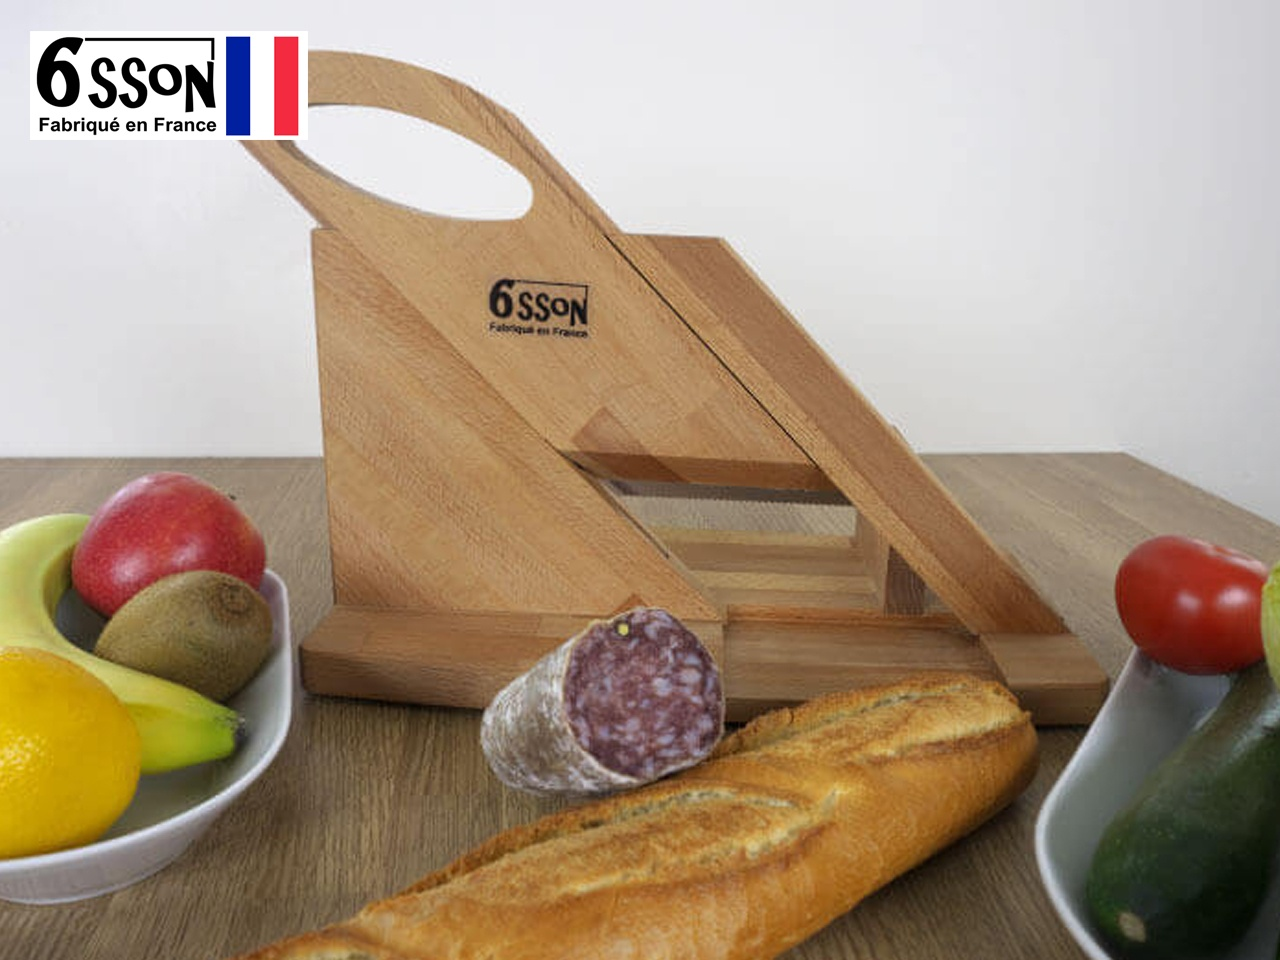 La trancheuse 6SSON Compact, un cadeau de No�l Made in France